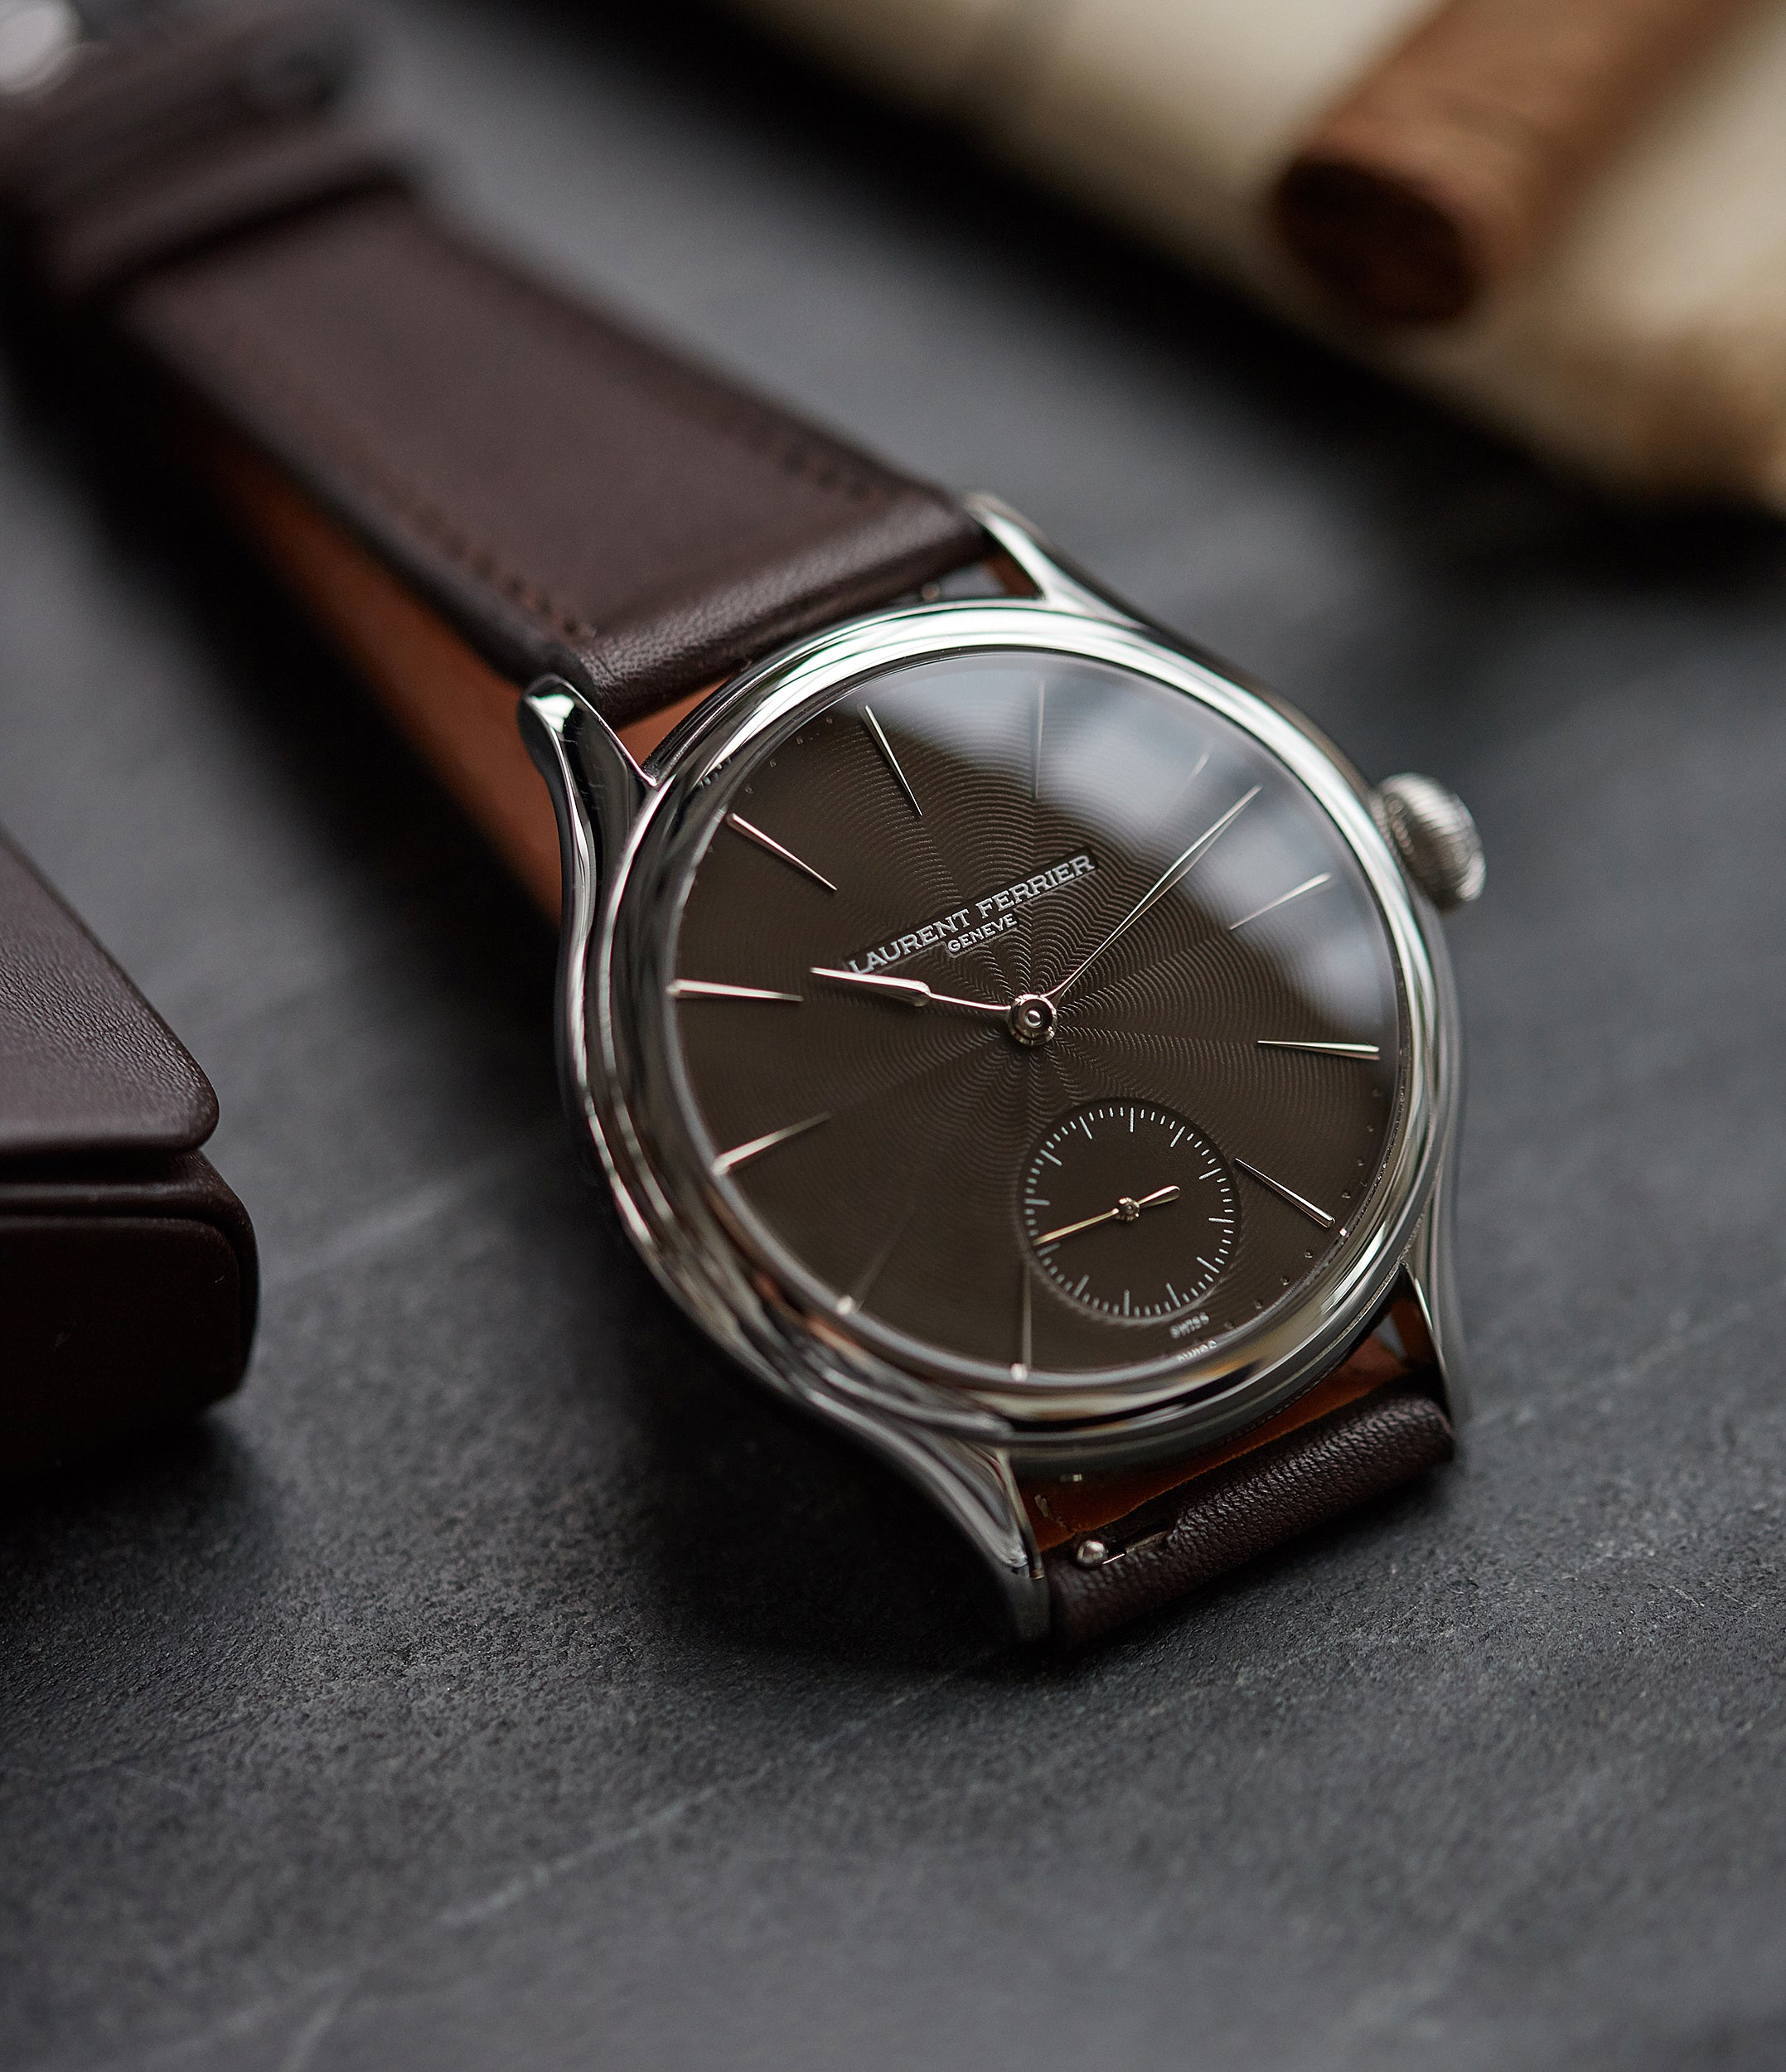 "rare Laurent Ferrier Prototype Galet Micro-rotor LF 229.01 ""Only Watch 2011"" steel watch brown dial for sale online at A Collected Man London UK approved seller of independent watchmakers"